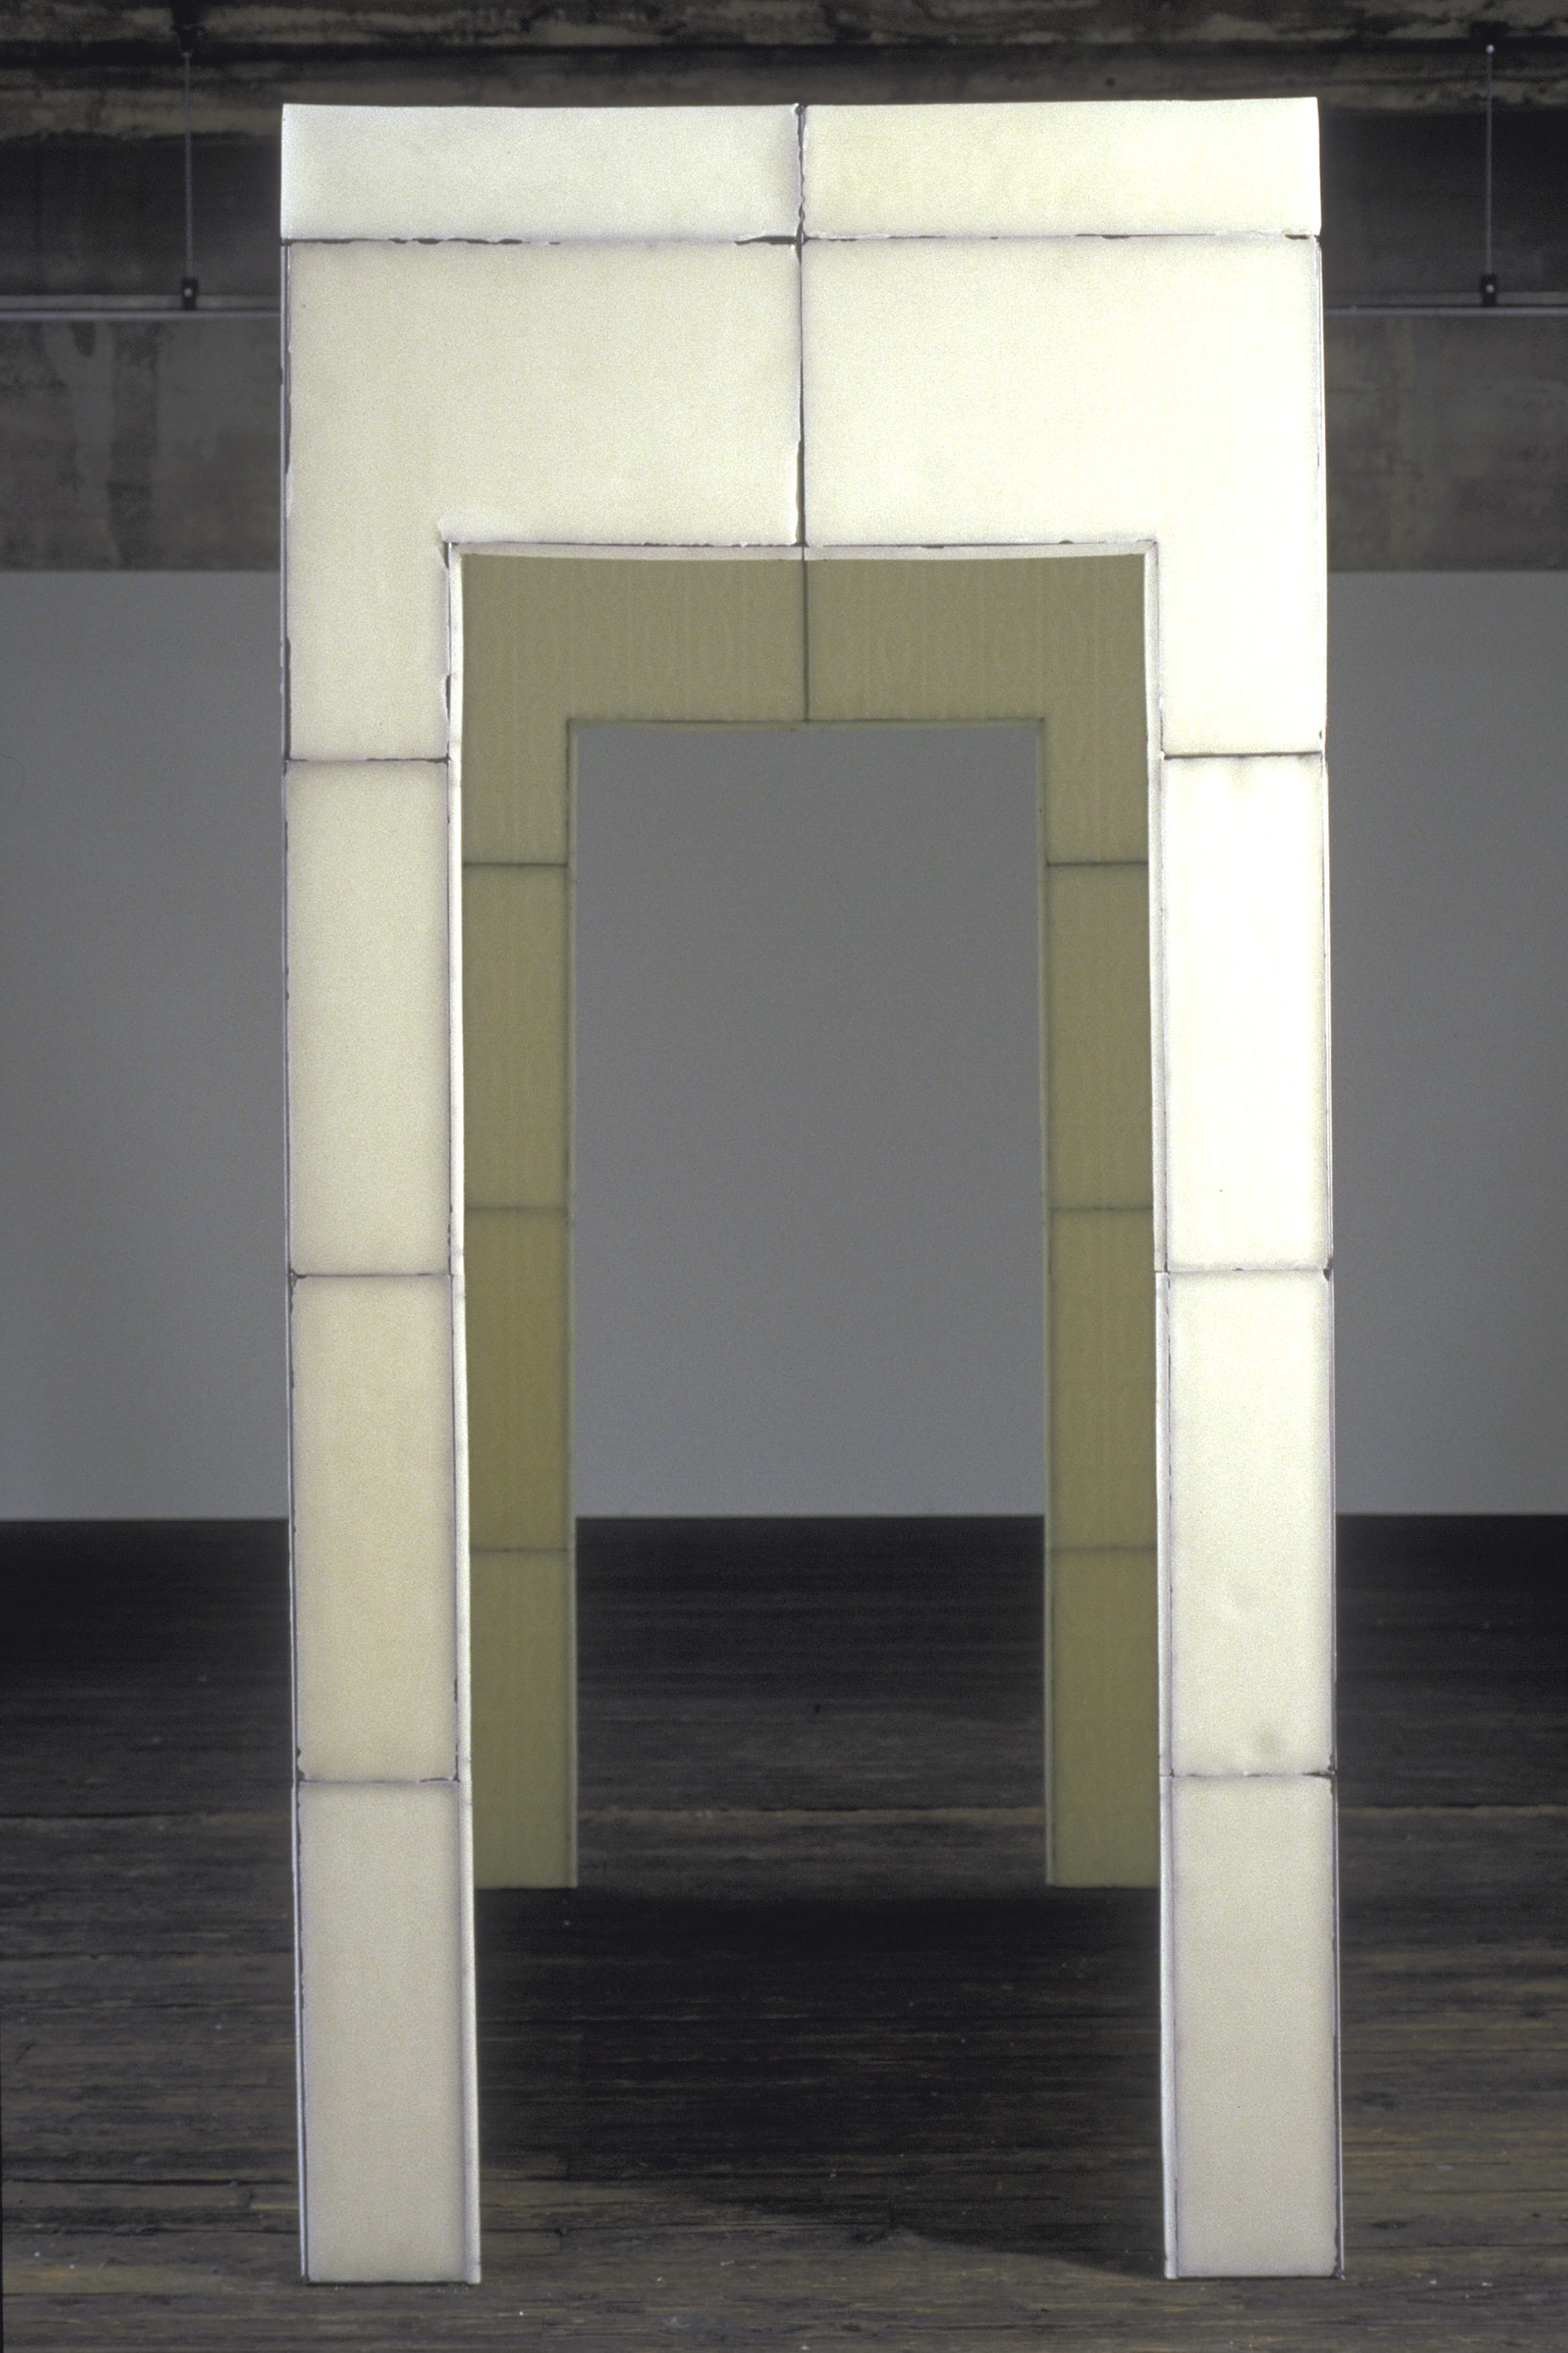 White Room (installation view)